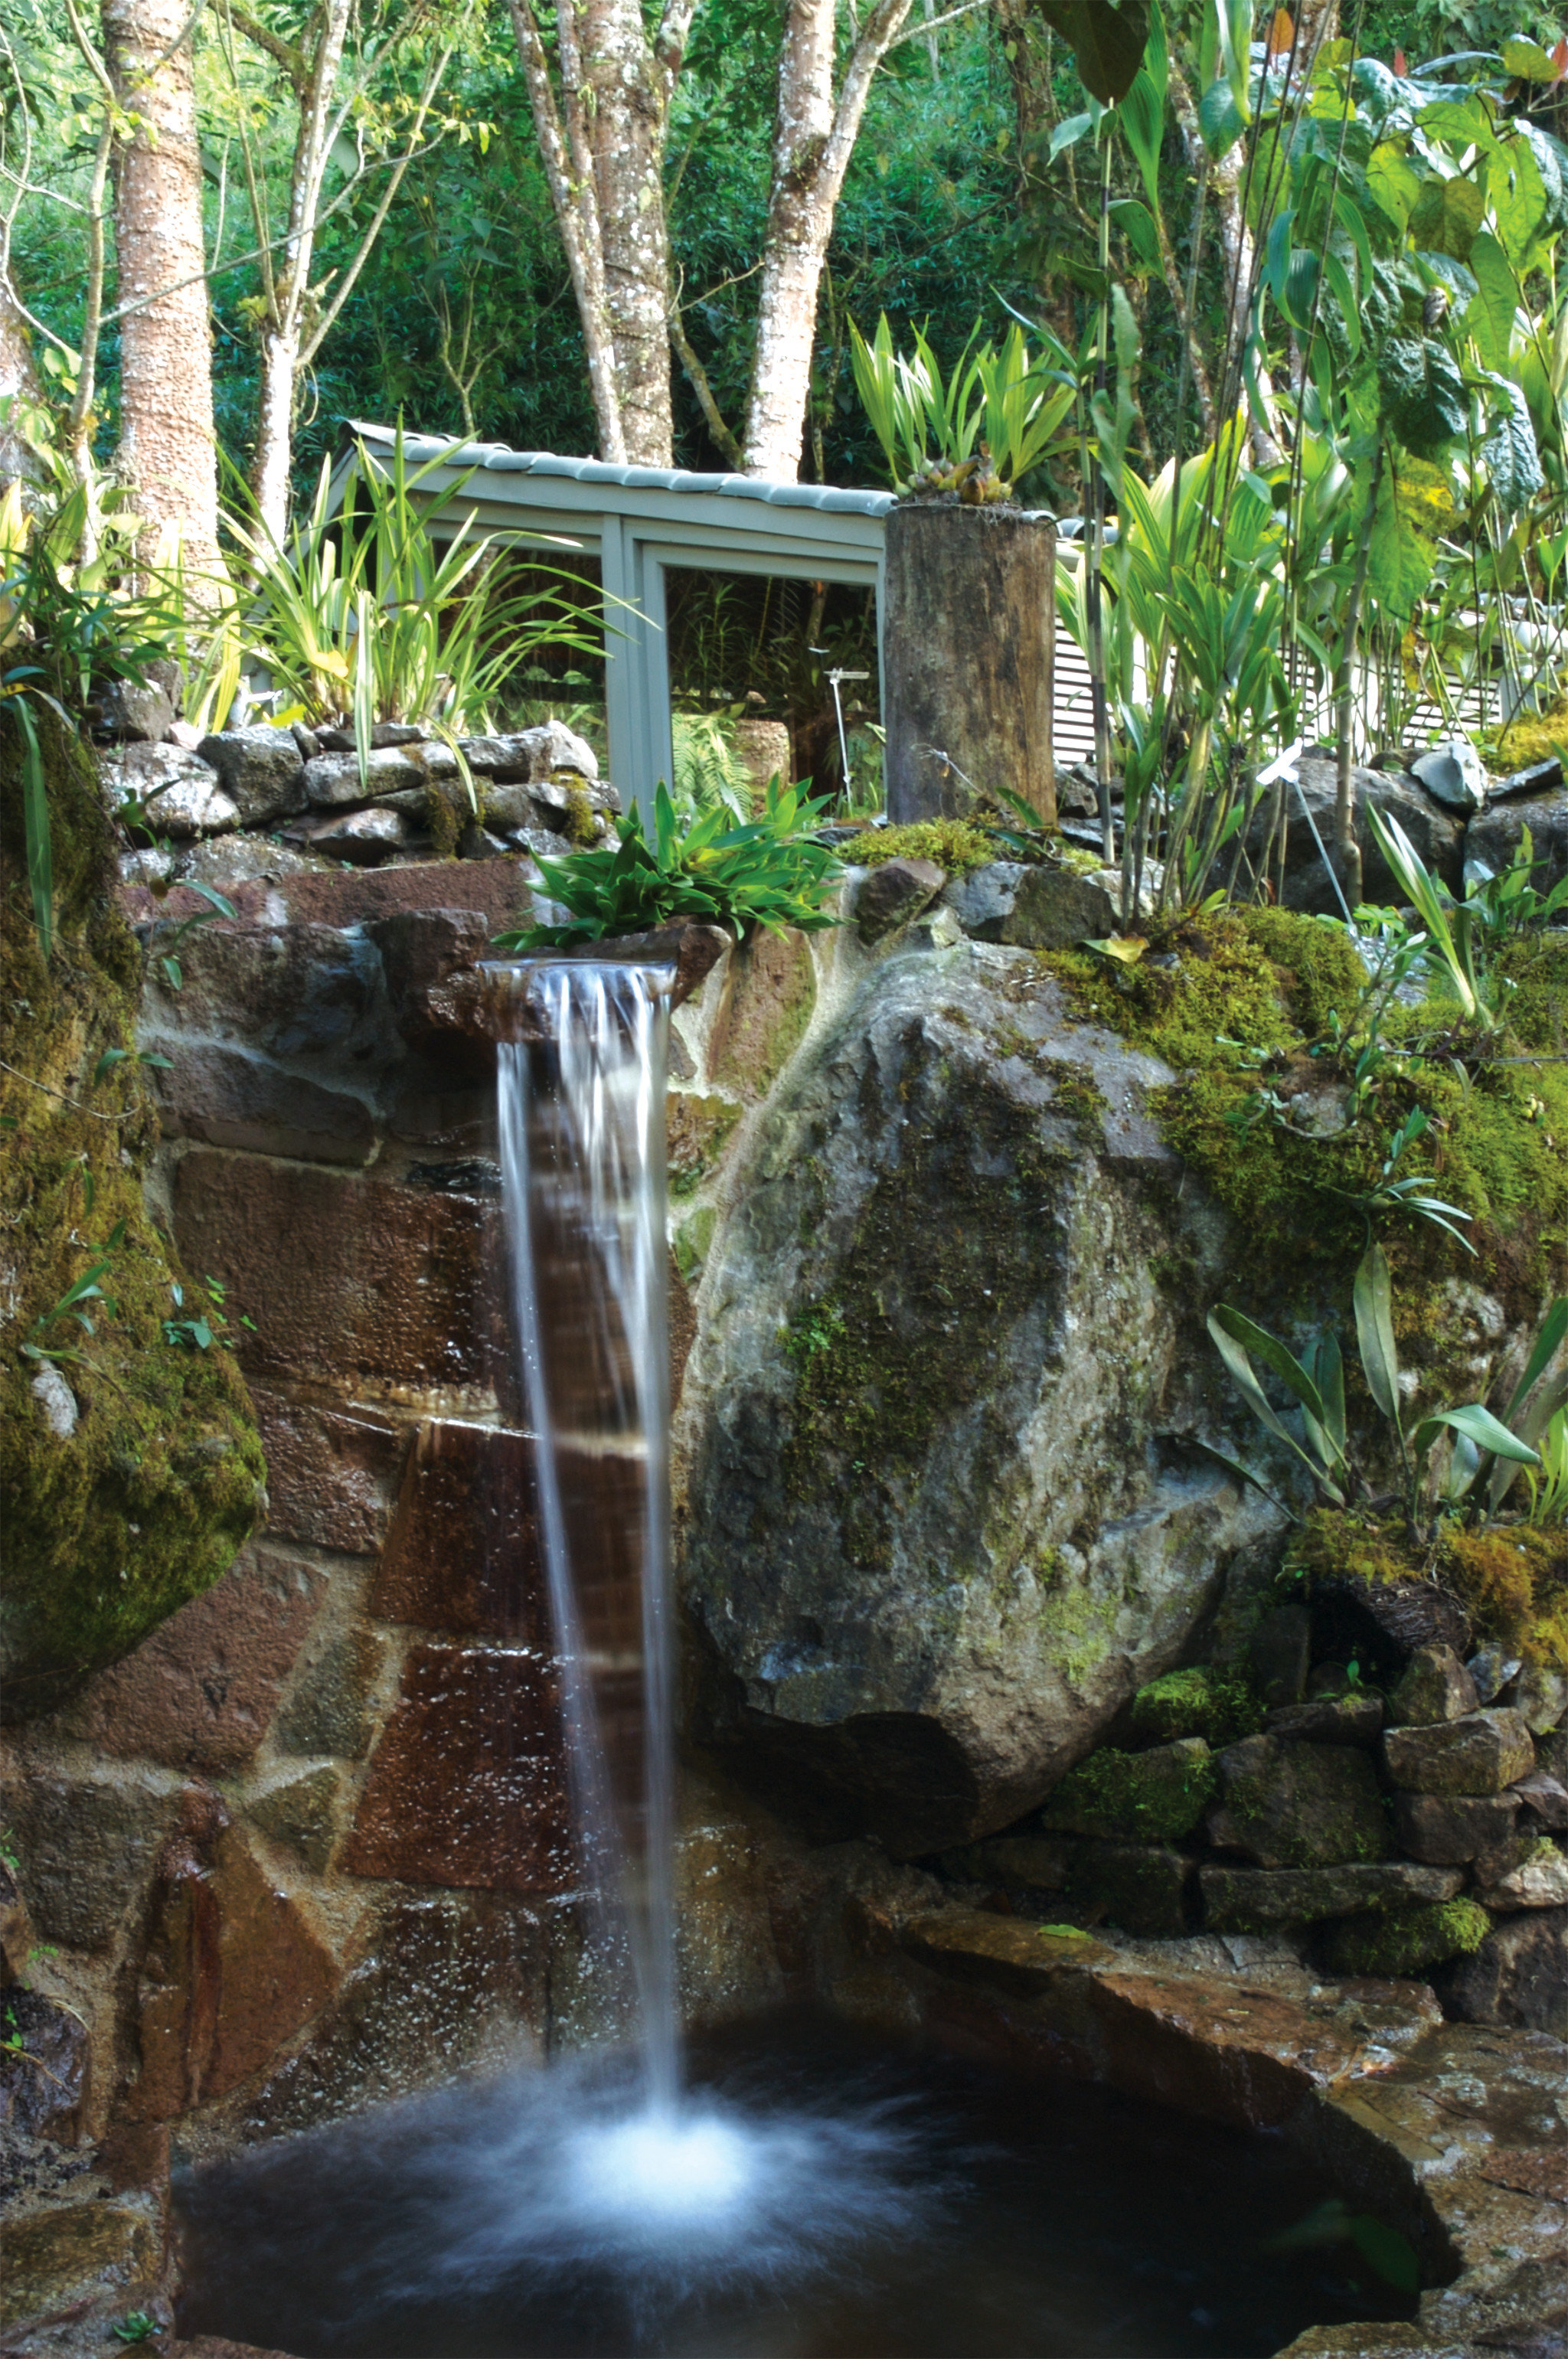 Jungle Natural wonders Nature Outdoor Activities Outdoors Scenic views Wildlife tree water rock Waterfall watercourse botany water feature stream rainforest Garden woodland pond stone surrounded